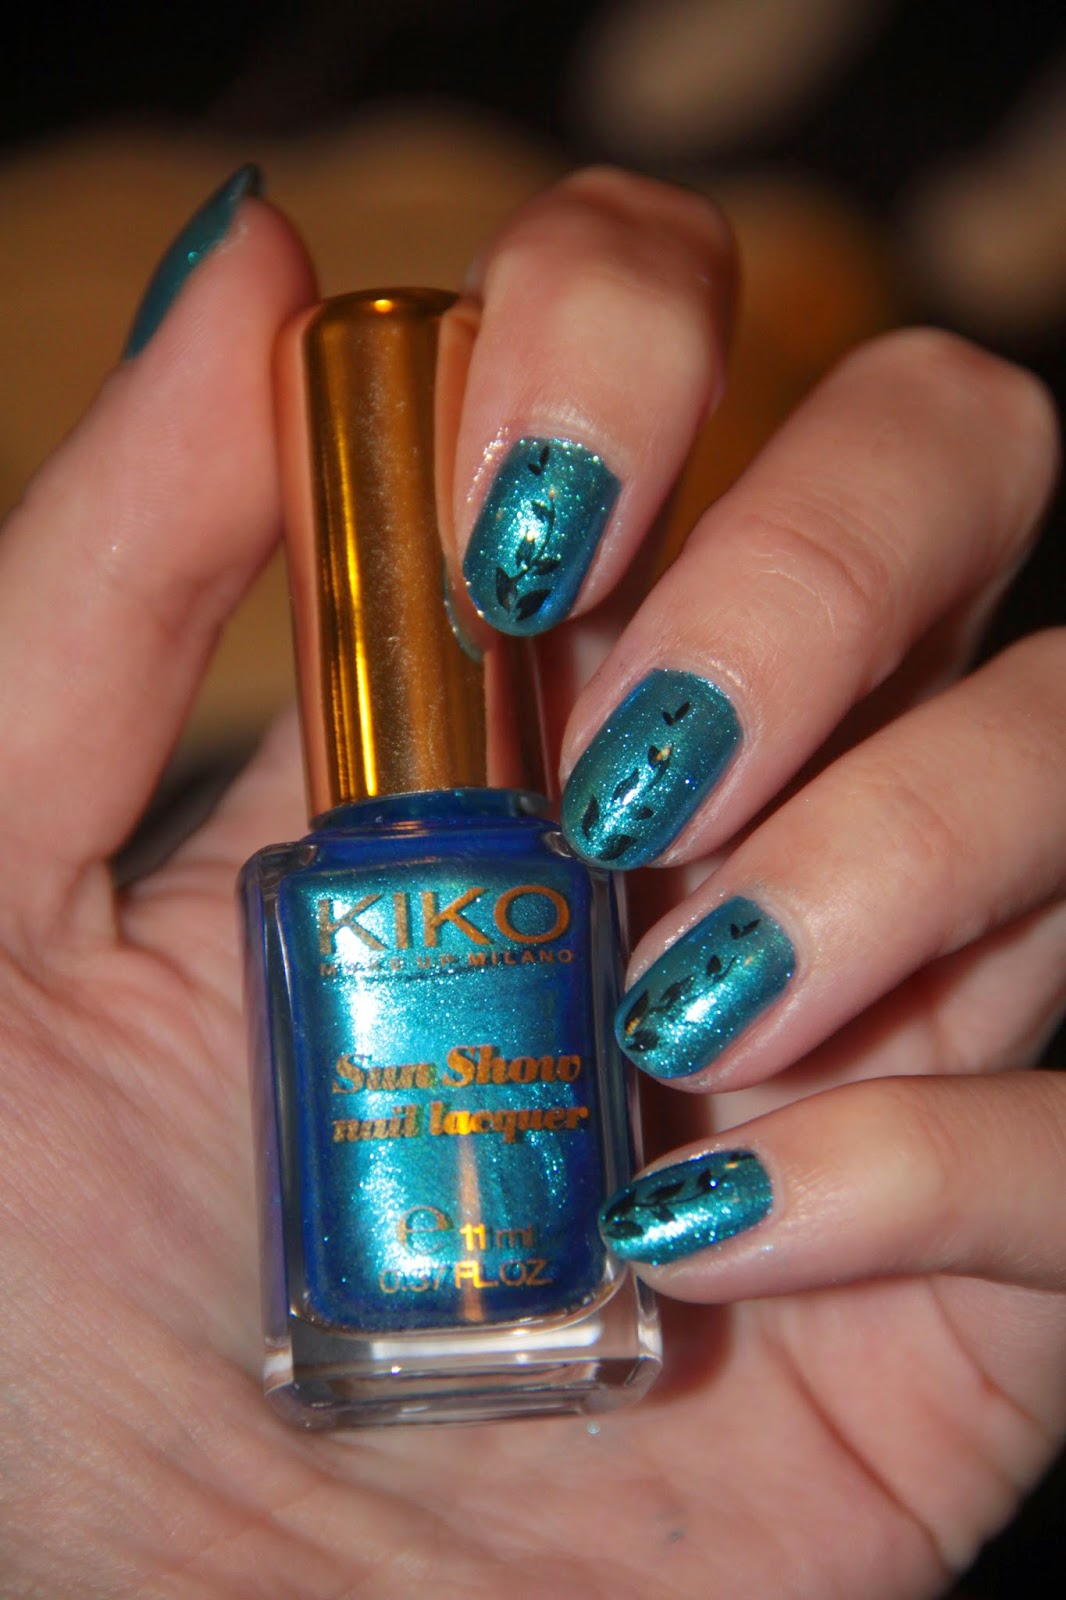 Vernis bleu Kiko, collection Sun Show, 475 Tropical Blue, stamping